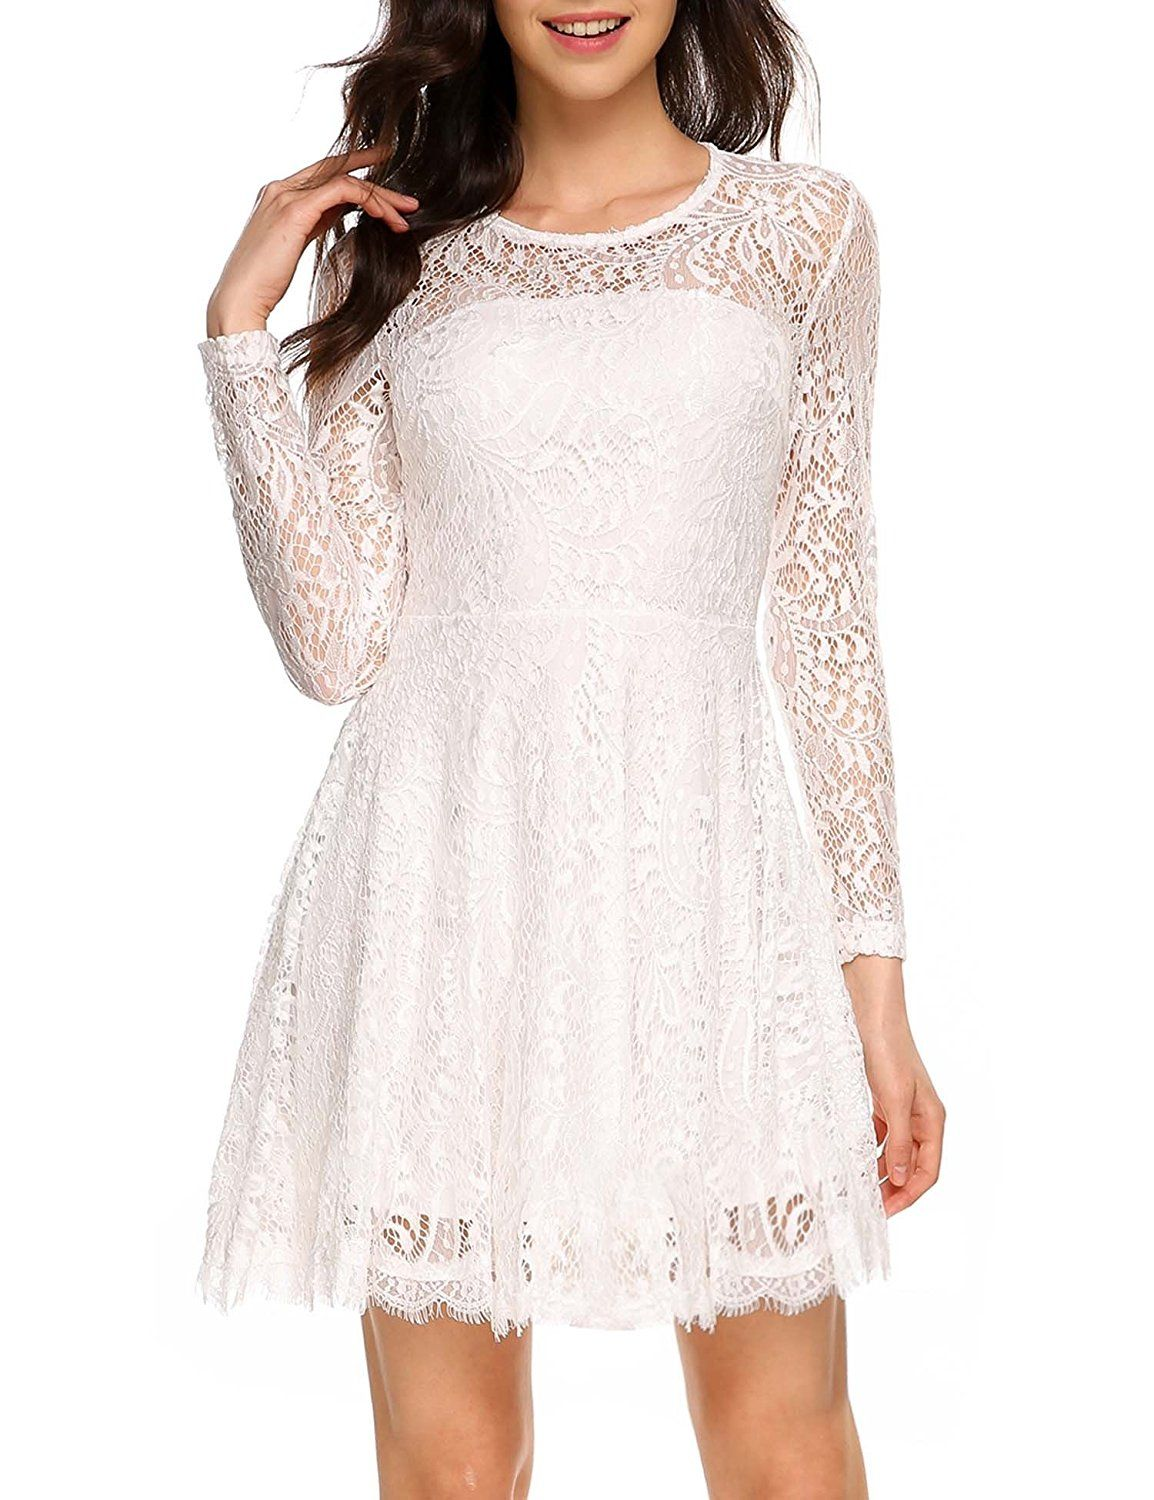 fbad8450b1a ANGVNS Women Vintage A-Line Long Sleeve Floral Lace Backless Fit and Flare  Dress at Amazon Women s Clothing store